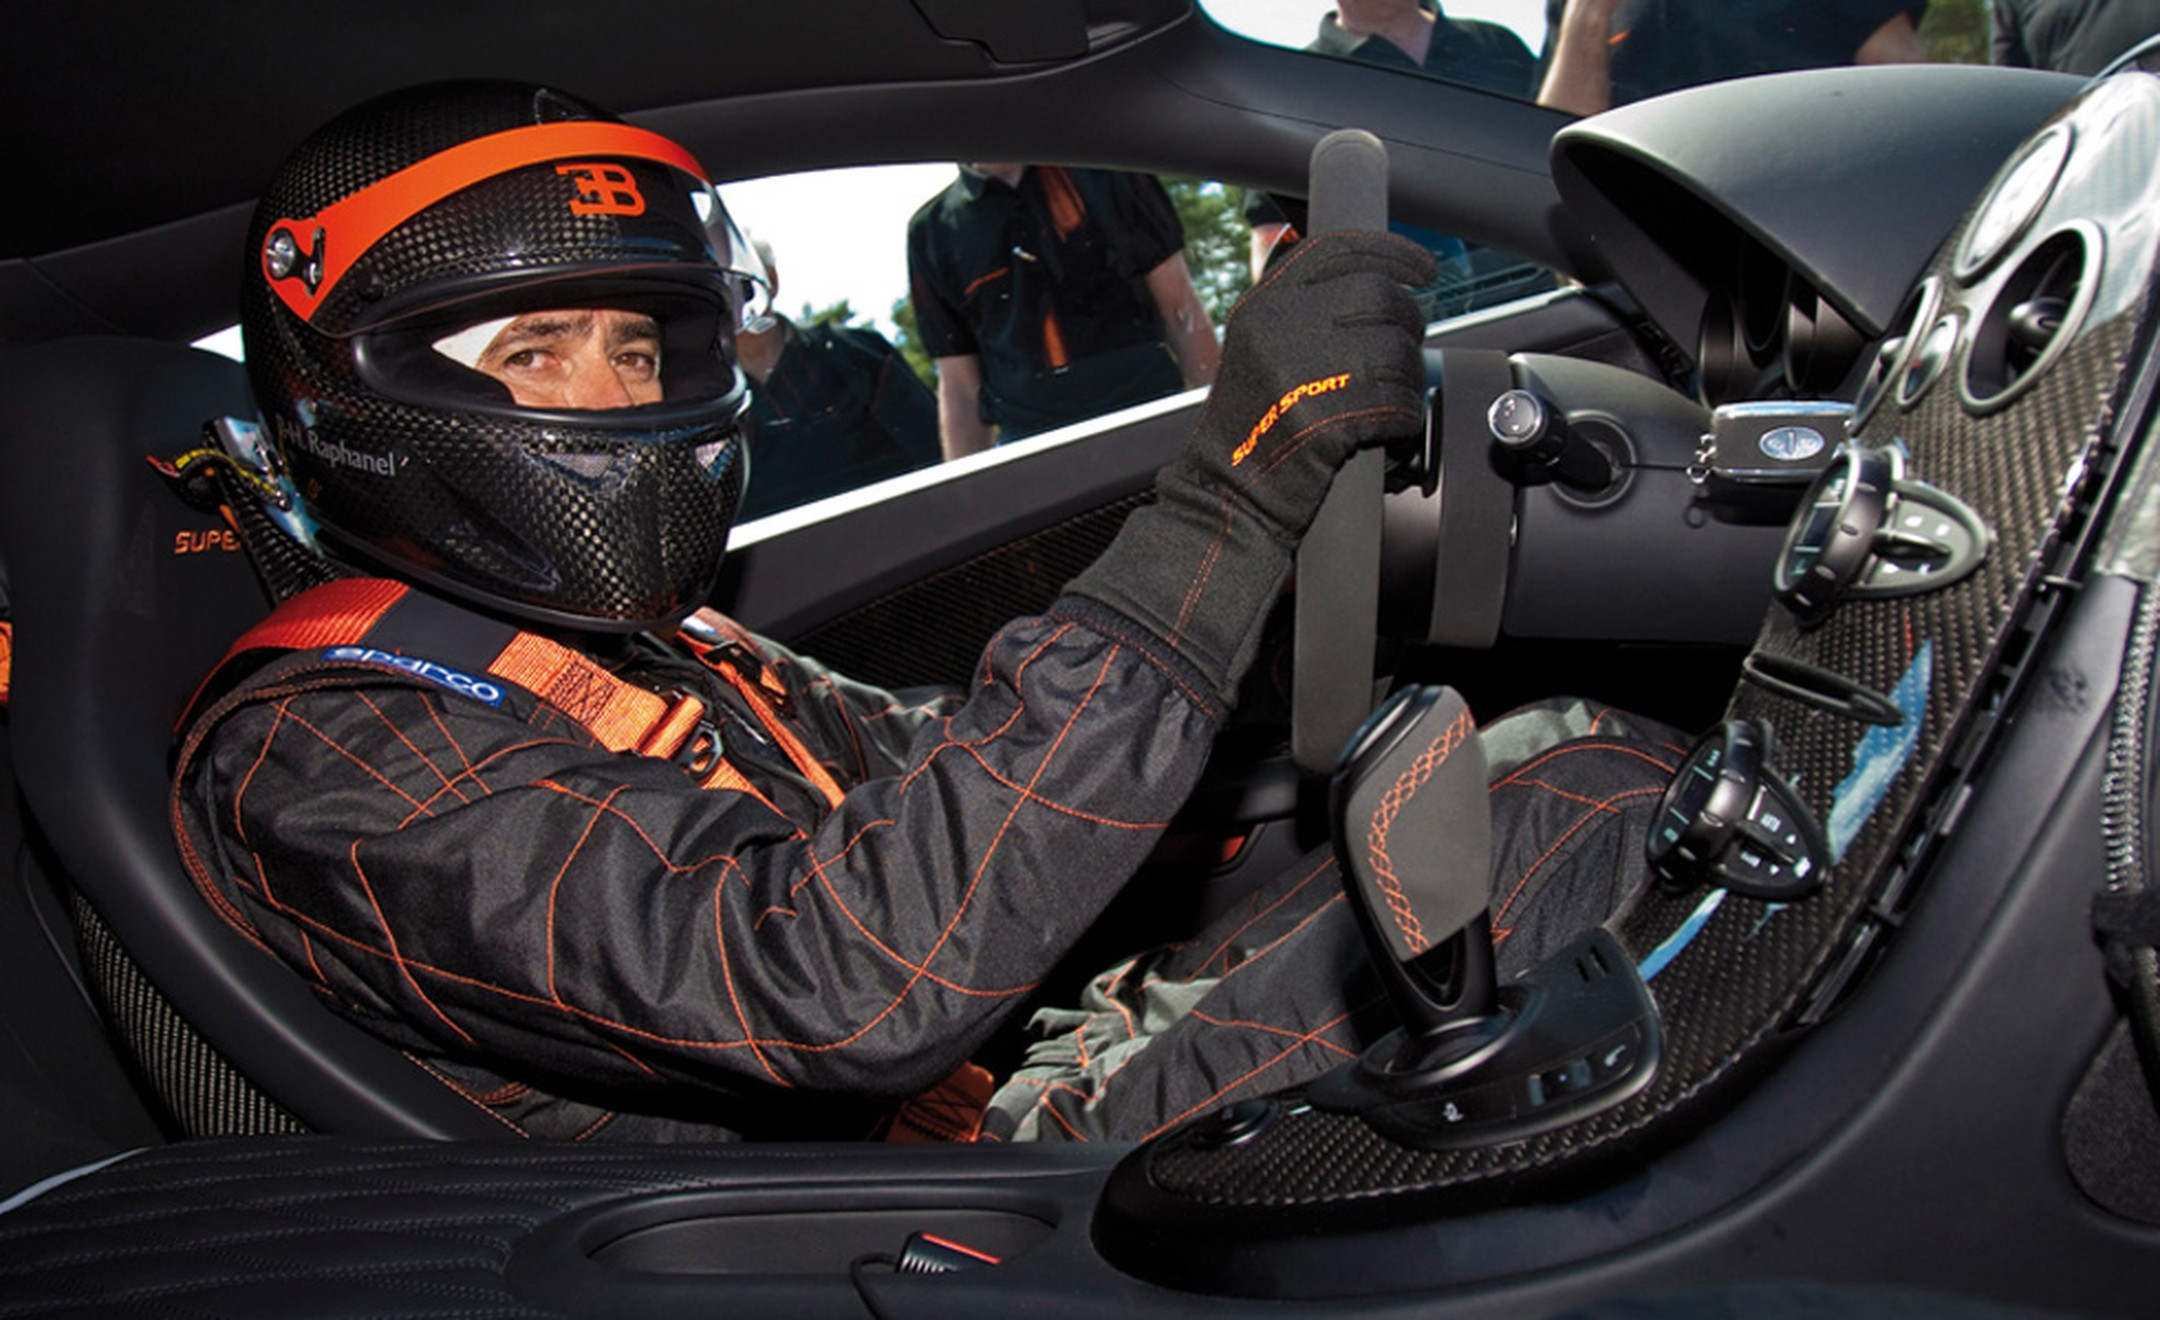 Test driver Pierre-Henri Raphanel at the wheel of the Bugatti Veryon Super Sport